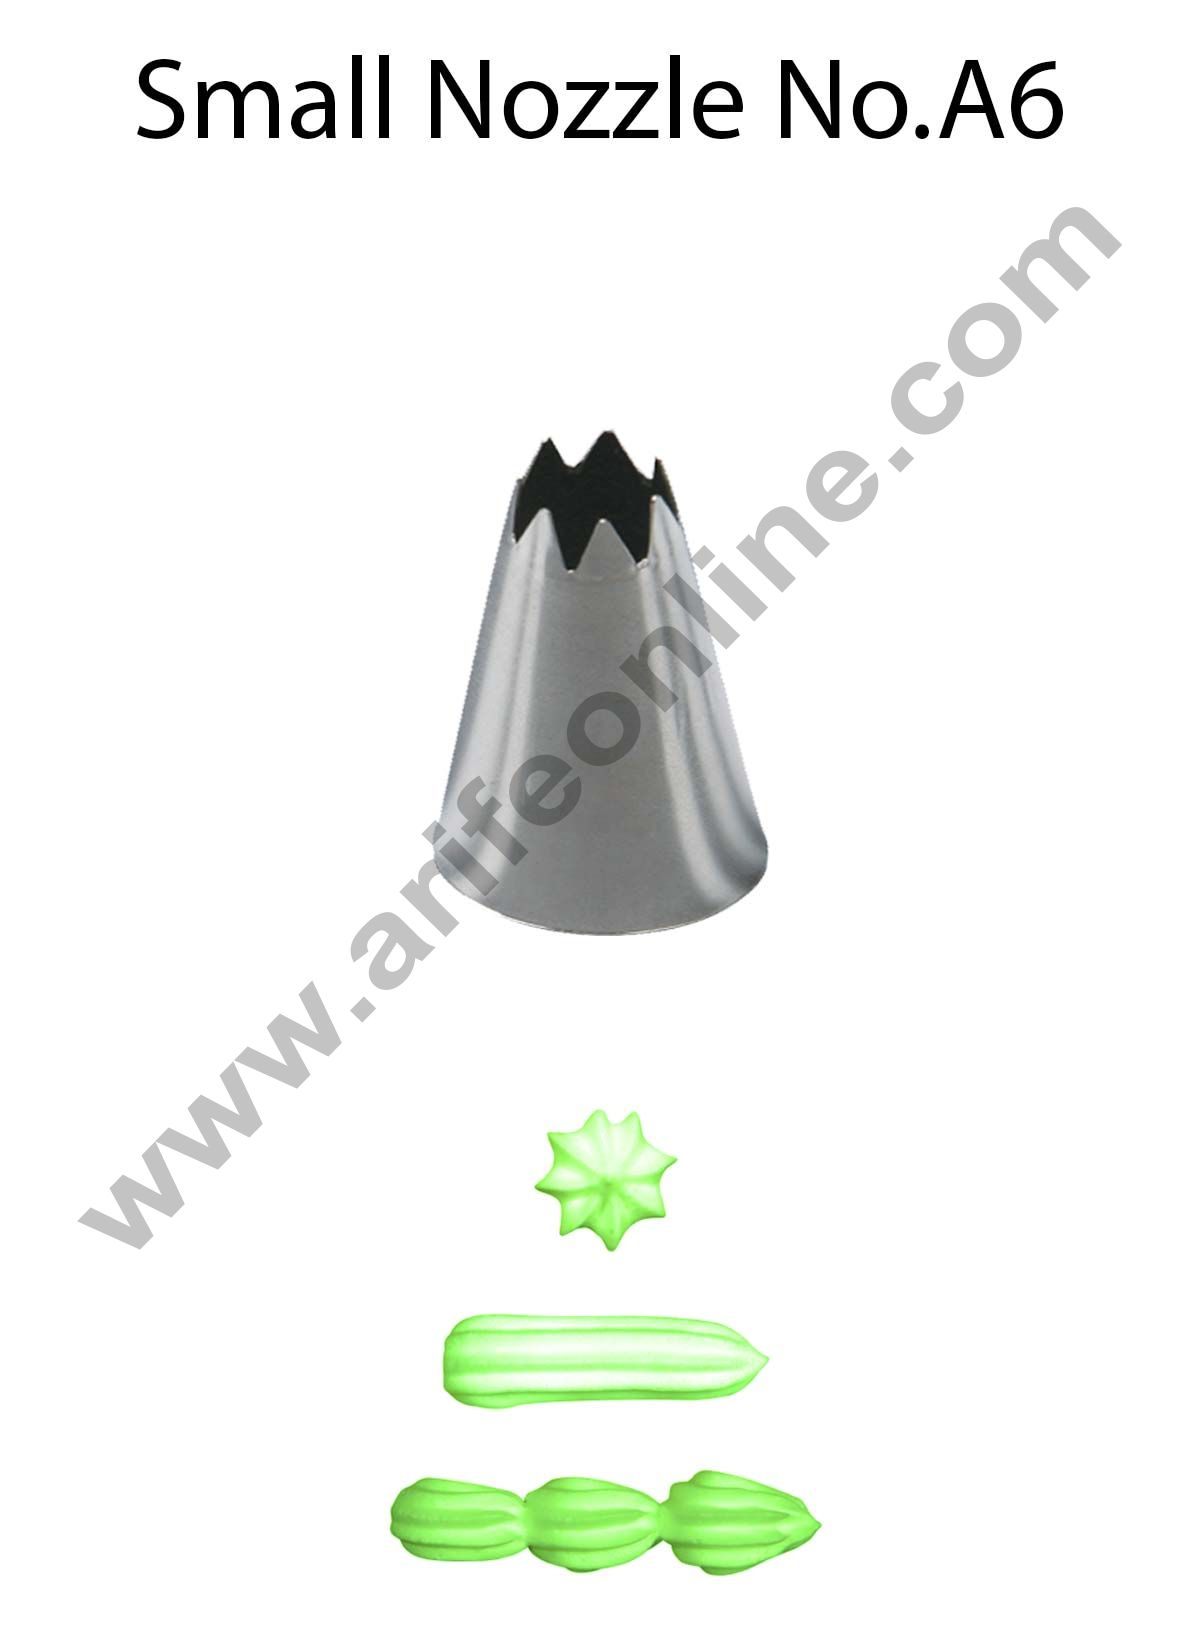 Cake Decor Small Nozzle - No. A6 Open Star Piping Nozzle